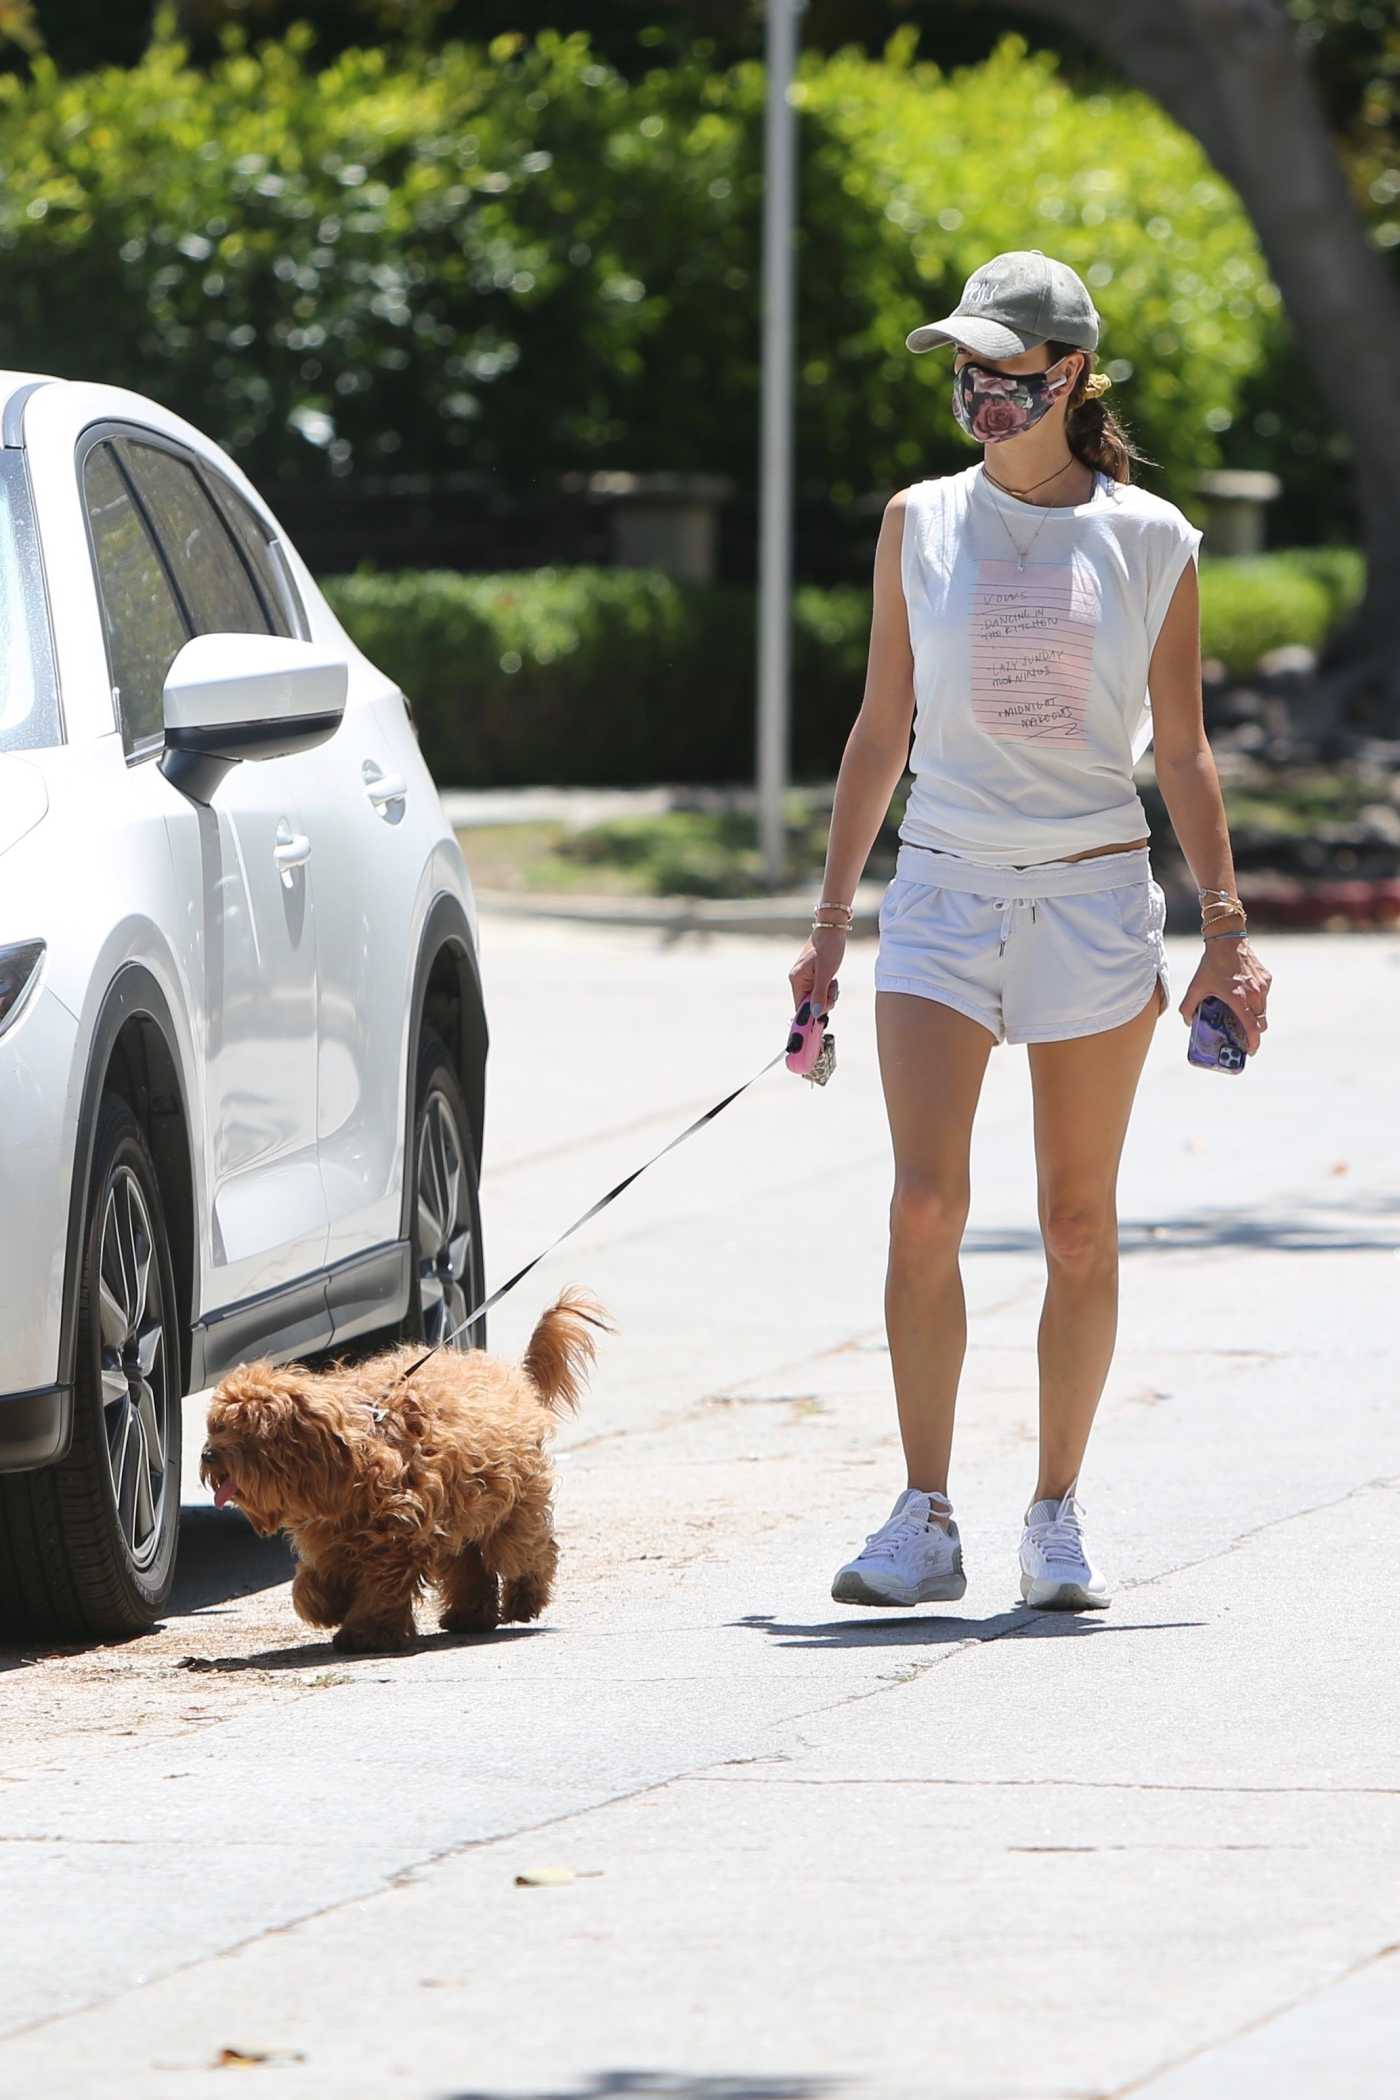 Alessandra Ambrosio in a Gray Cap Walks Her Dog Out in Brentwood 05/14/2020